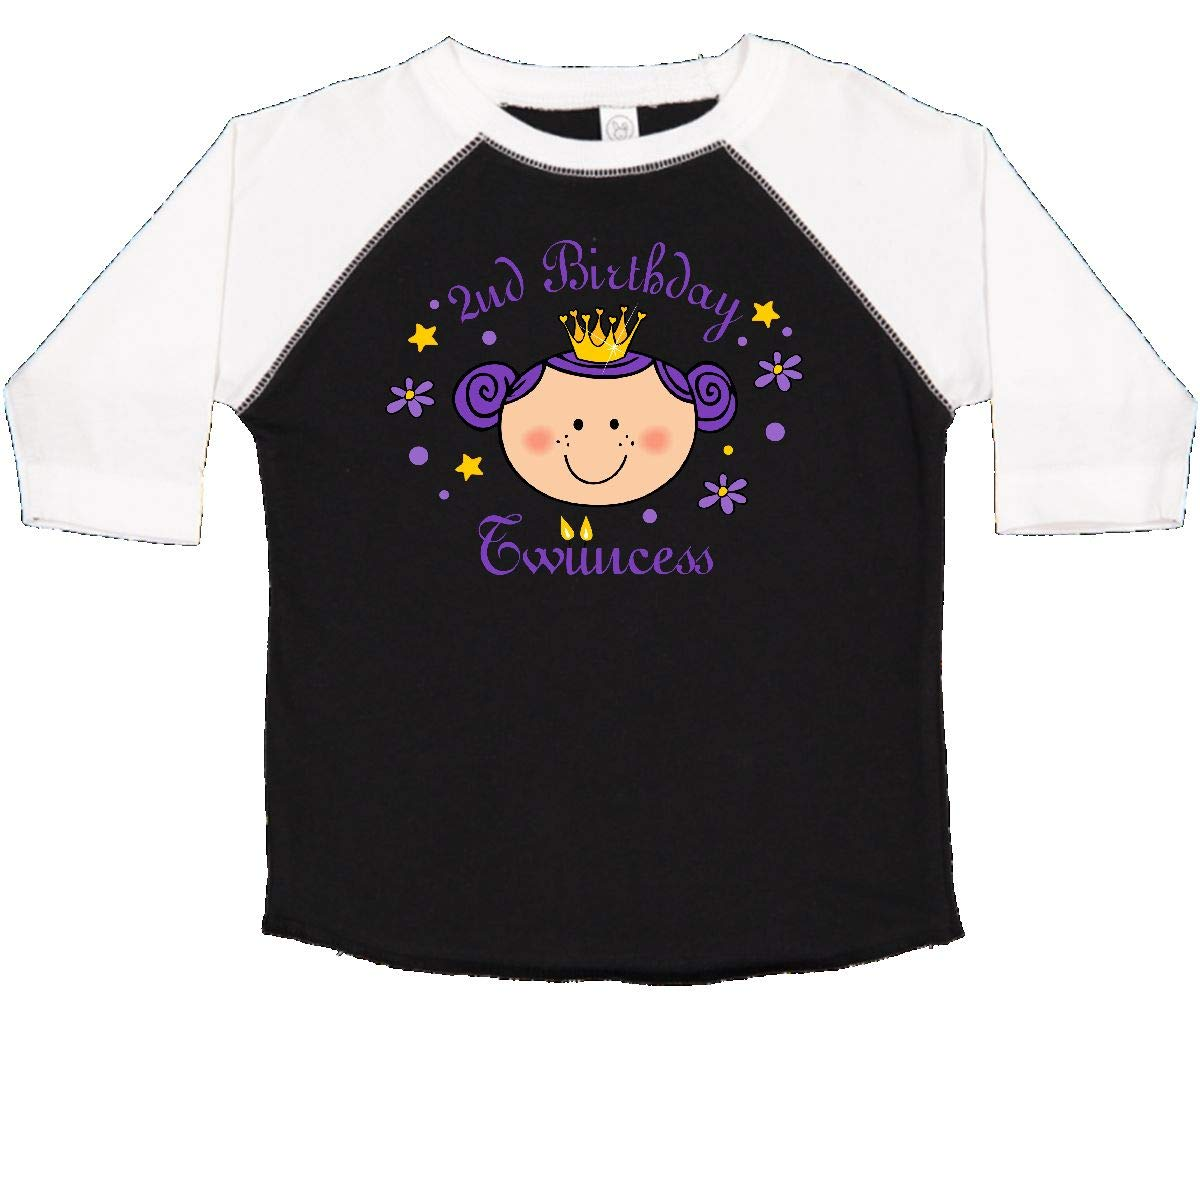 inktastic 2nd Birthday Twincess Toddler T-Shirt